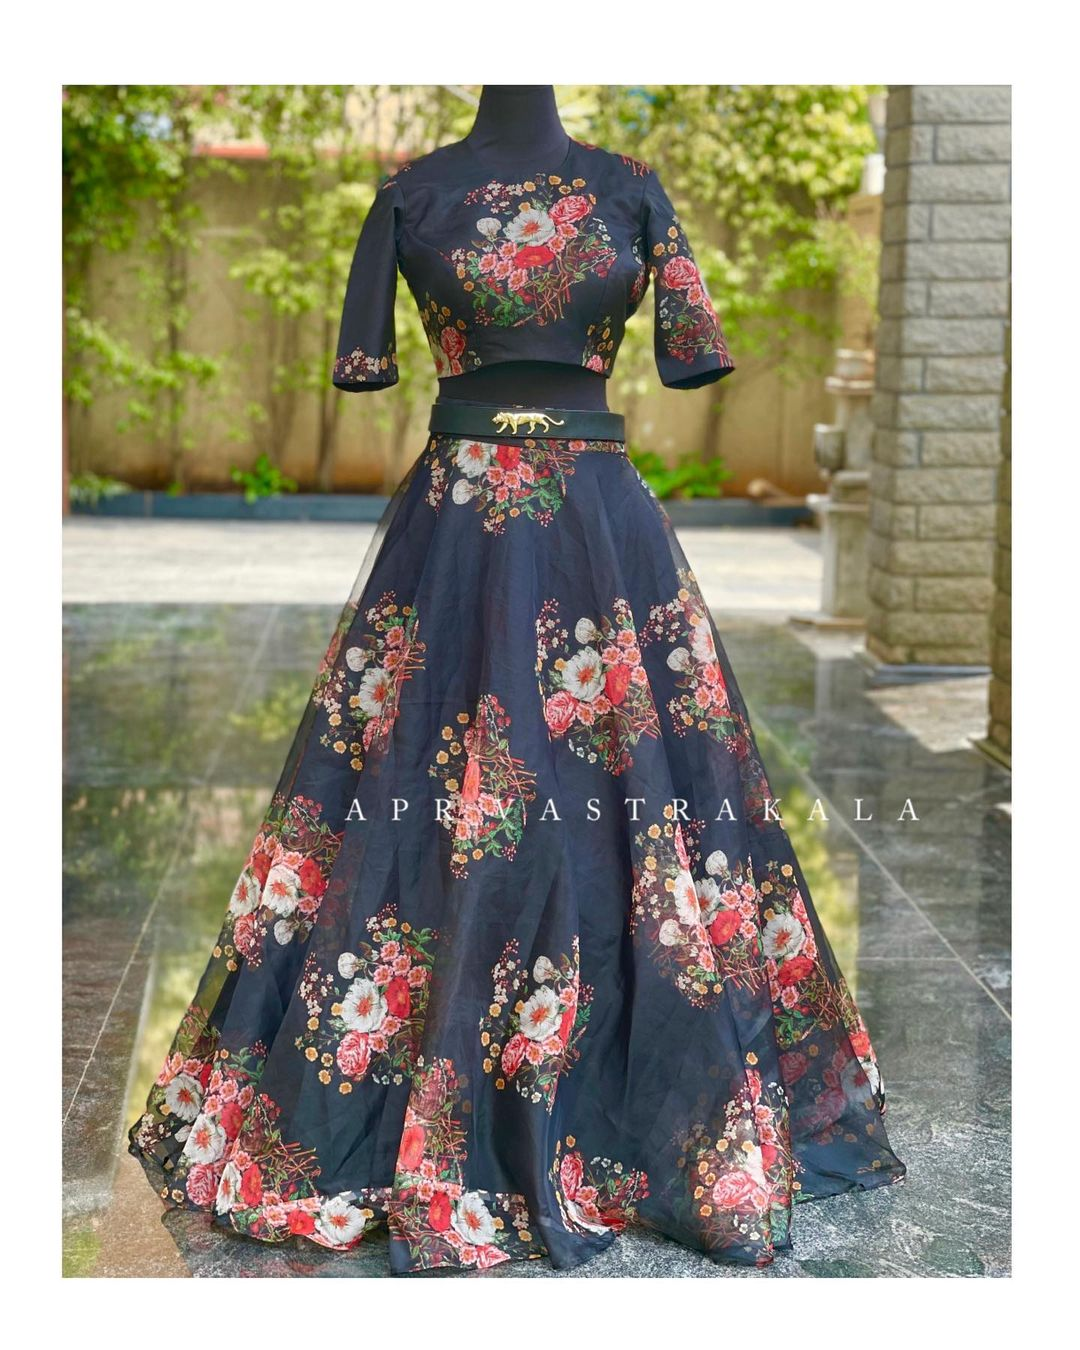 Sabyasachi inspired design Printed organza floral crop top and skirt paired with leather belt. 2021-05-09